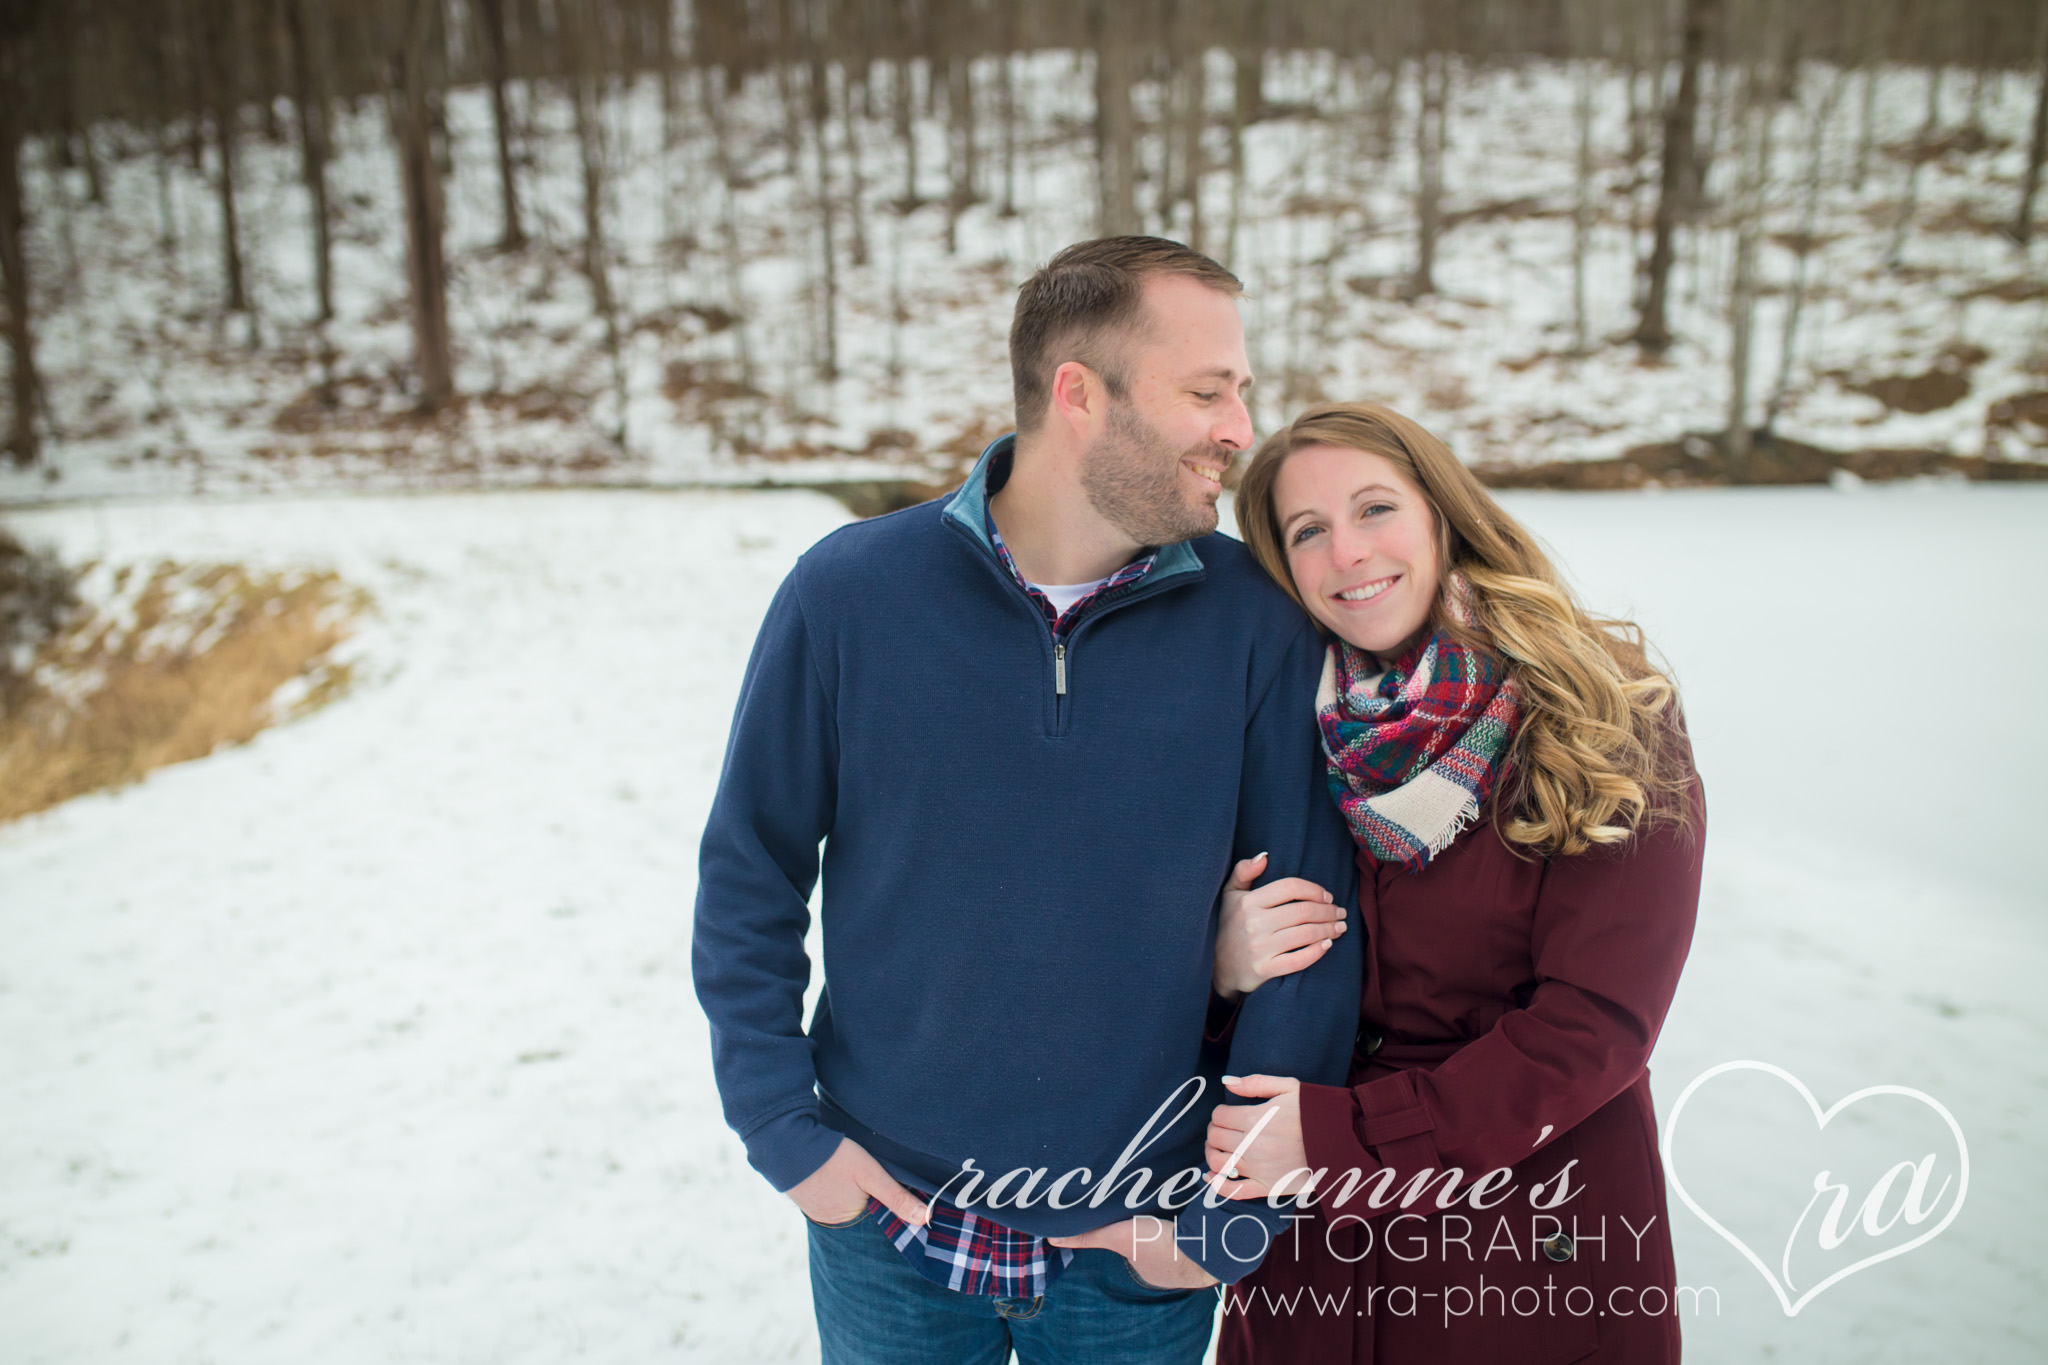 014-JKM-DUBOIS-PA-ENGAGEMENT-PHOTOGRAPHY.jpg